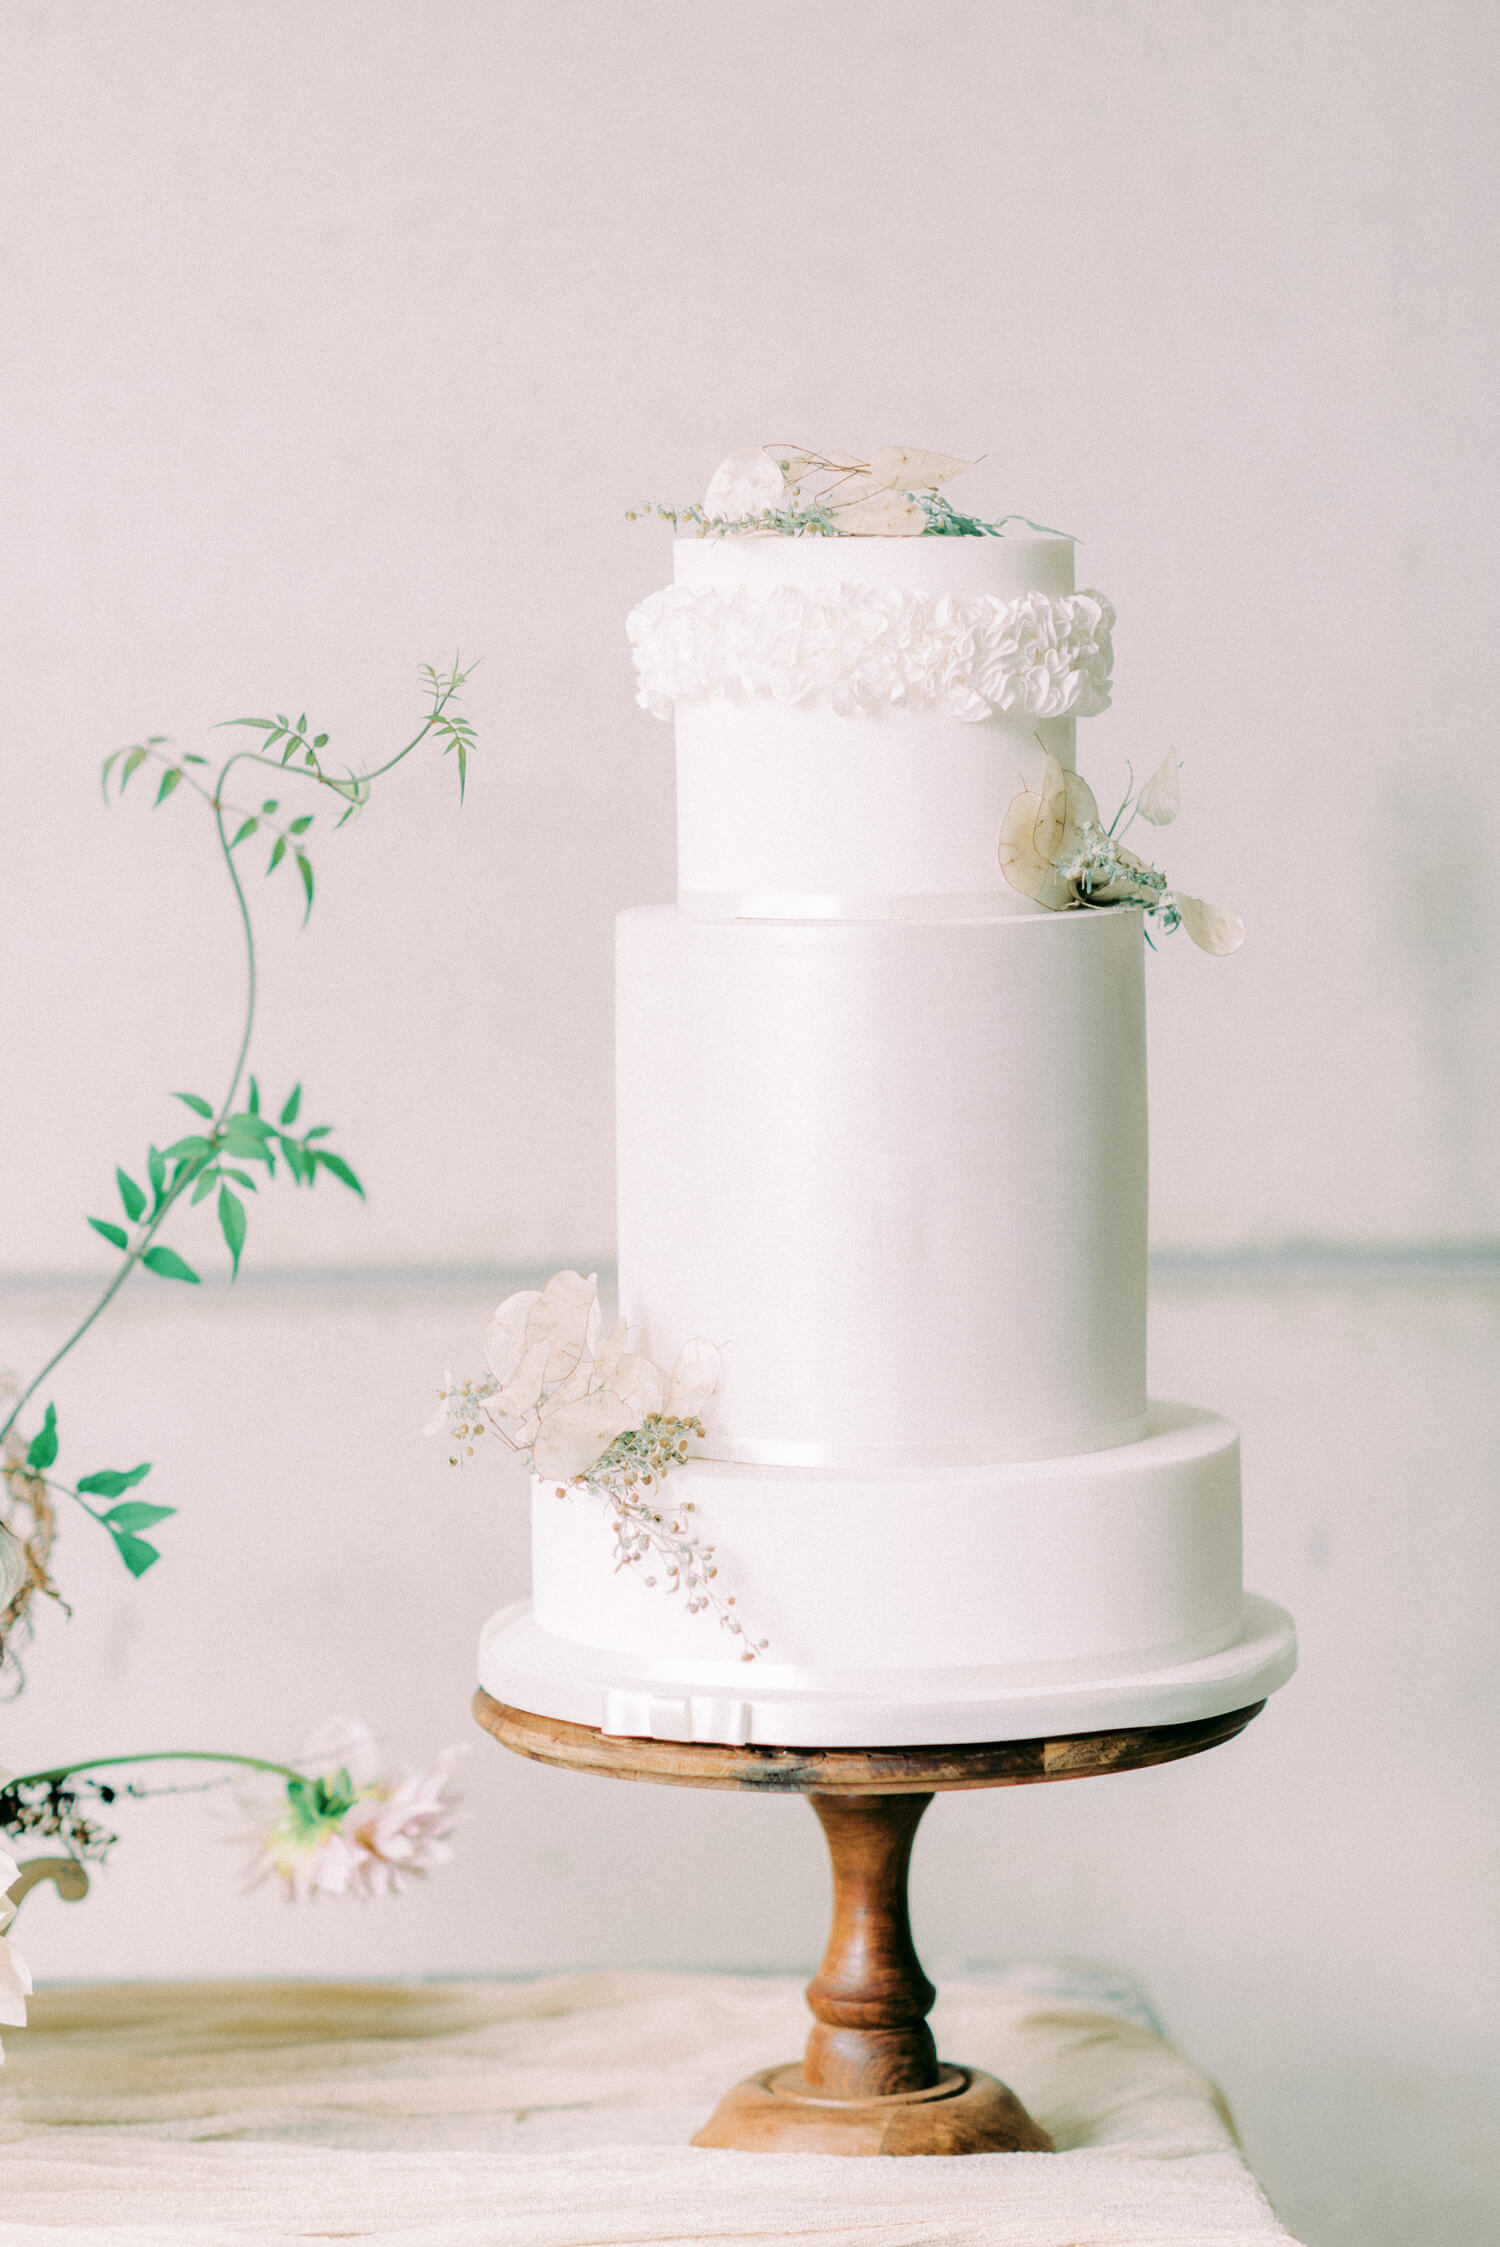 three tier simple wedding cake with ruffles and dried flowers lunaria and gypsophilia. Cake by Poppy Pickering. Photo by Cristina Ilao photography